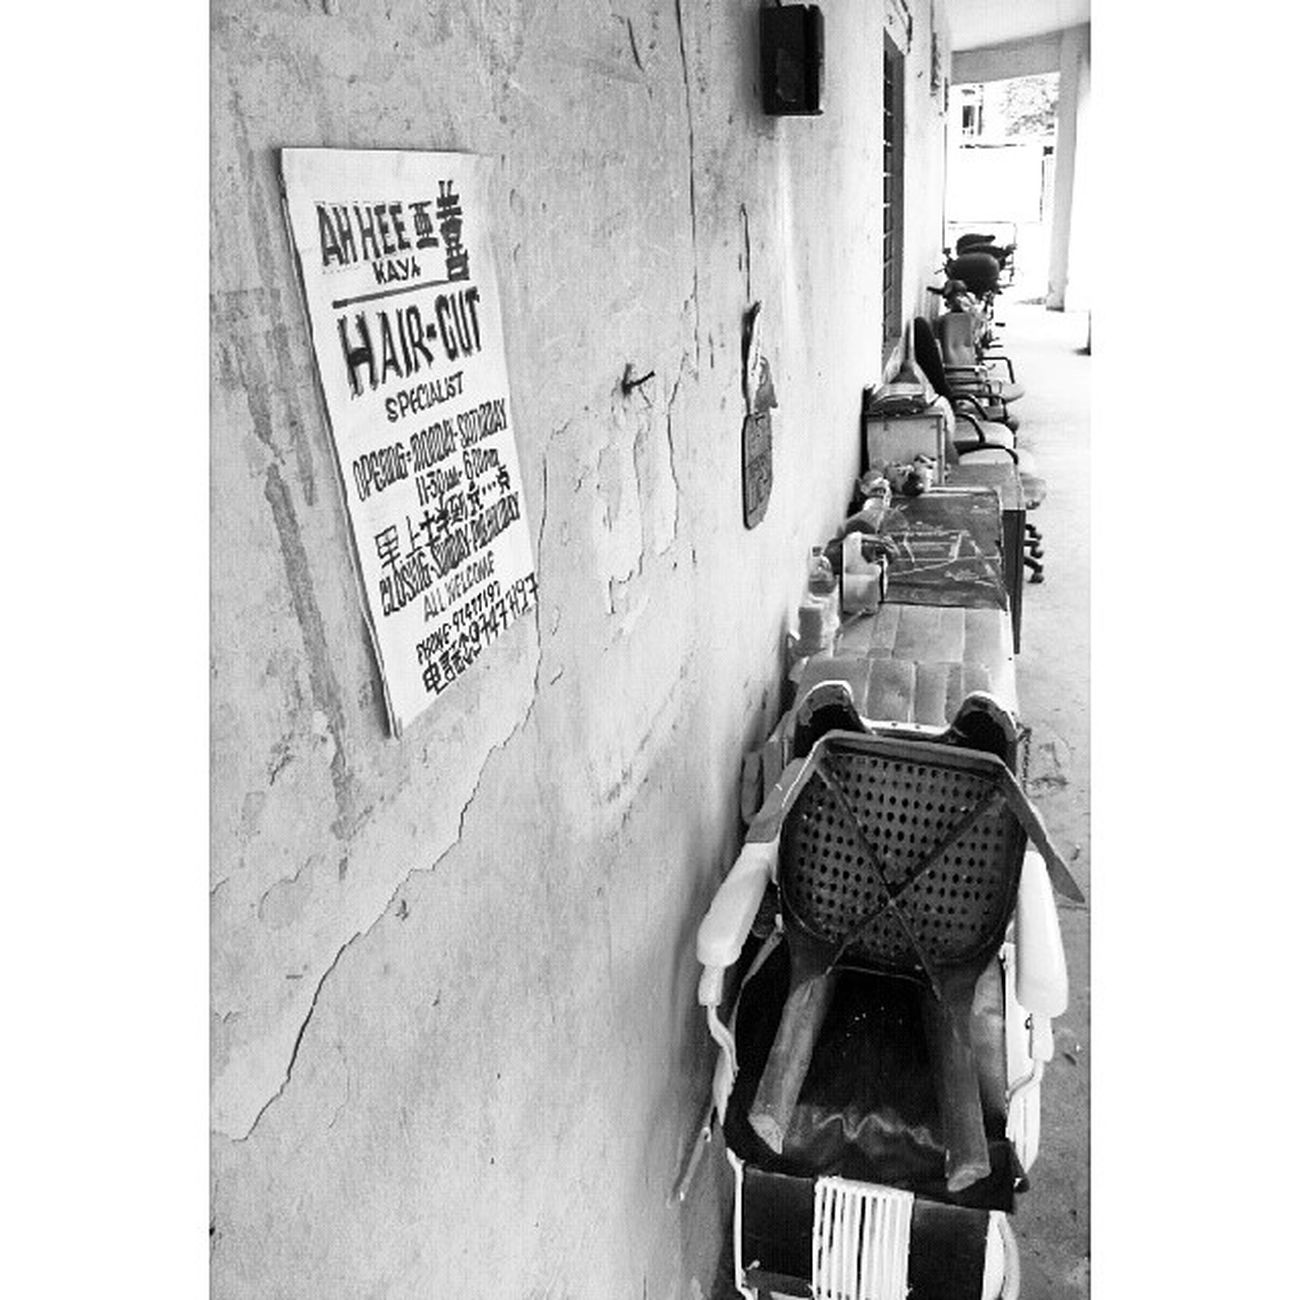 Life without colours: 4 - the barber without a shop. Monochrome Bnw_globe Igfotogram_4bw Ig_fotogramers